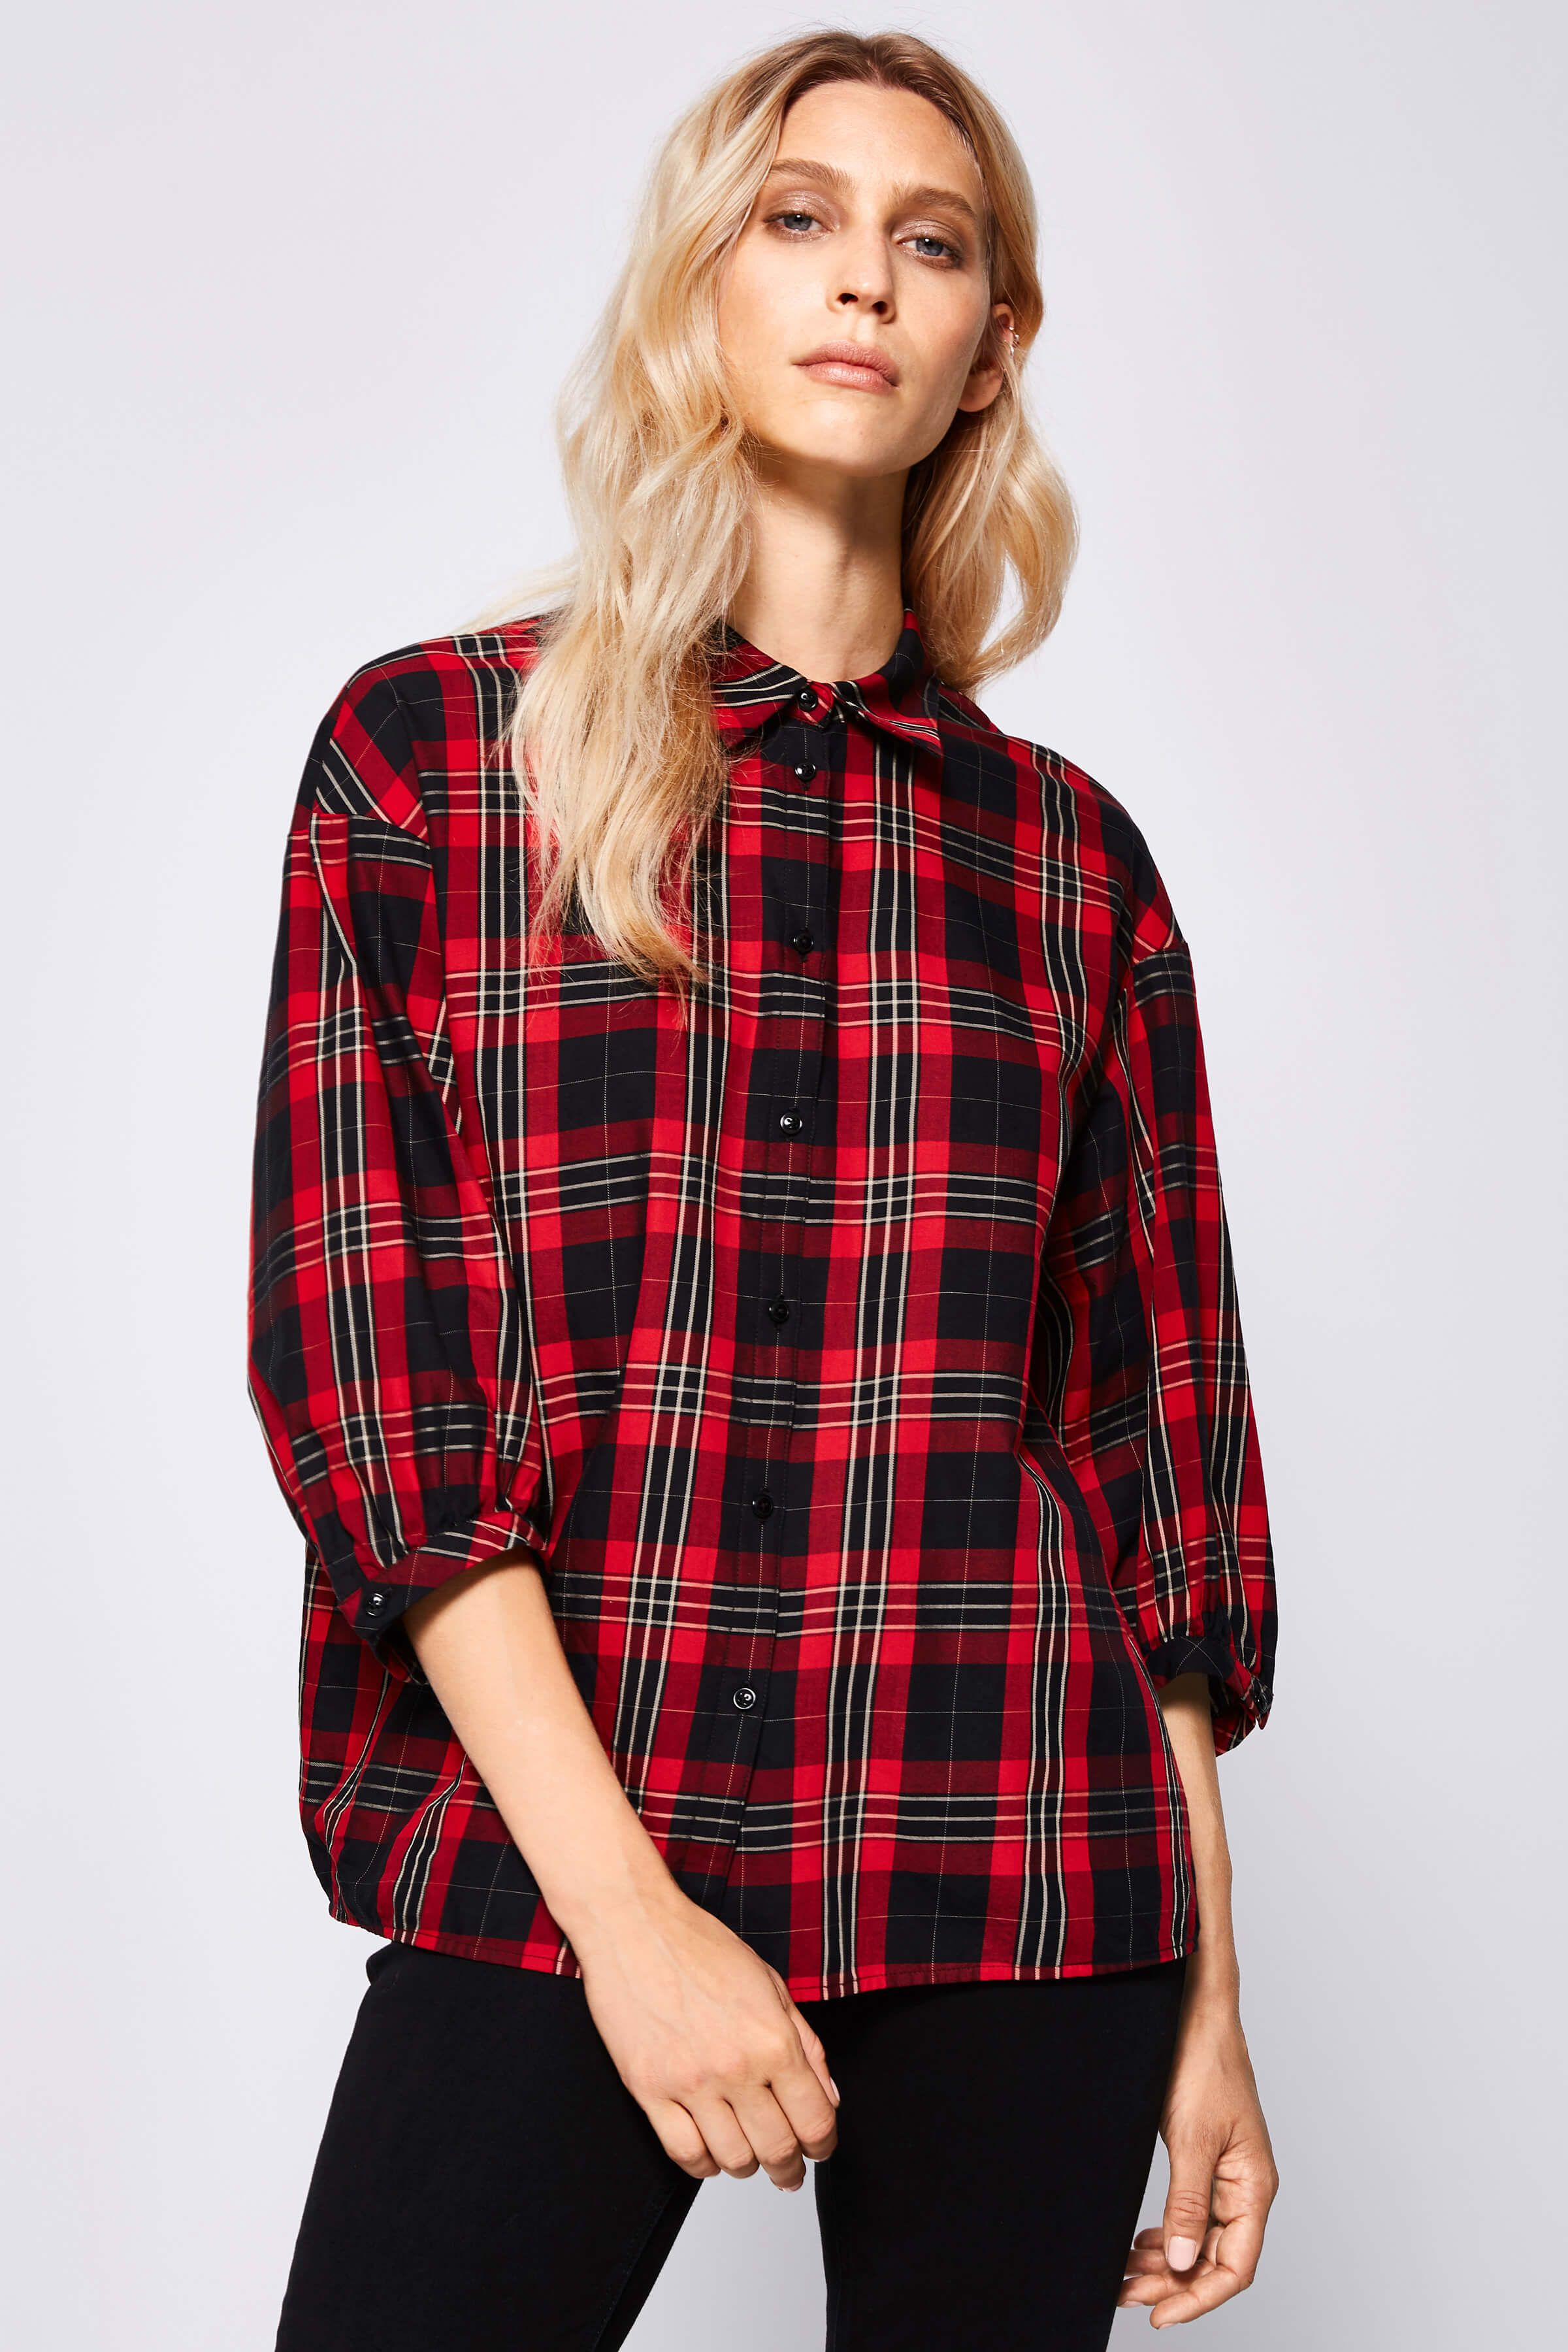 low priced b9352 18fa8 Drykorn blouse LINDSEY gekocht bij LLL outlet winter | Looks ...